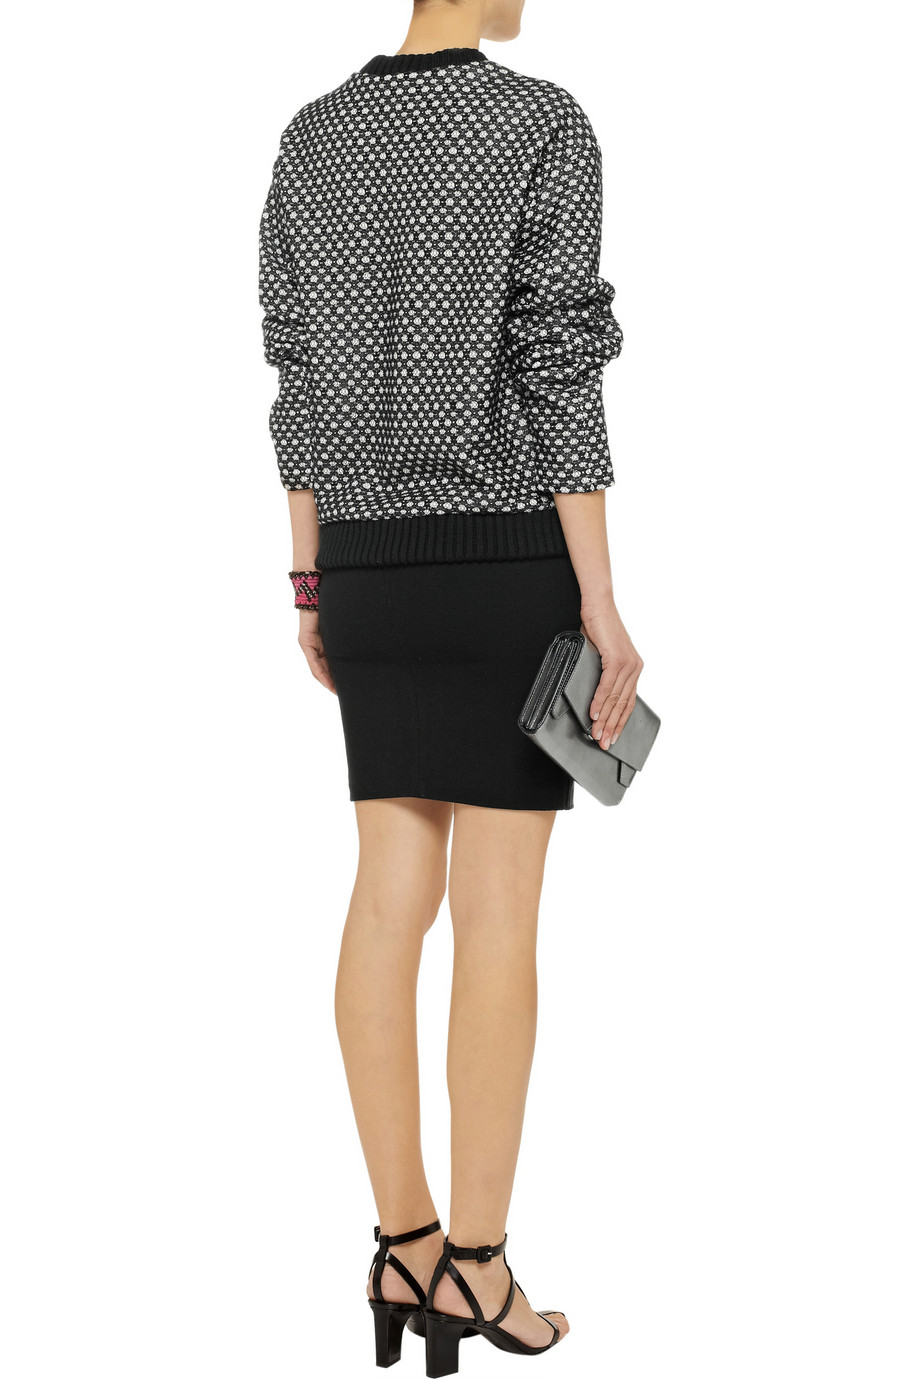 Derek Lam Lace-covered wool sweater – 60% at THE OUTNET.COM